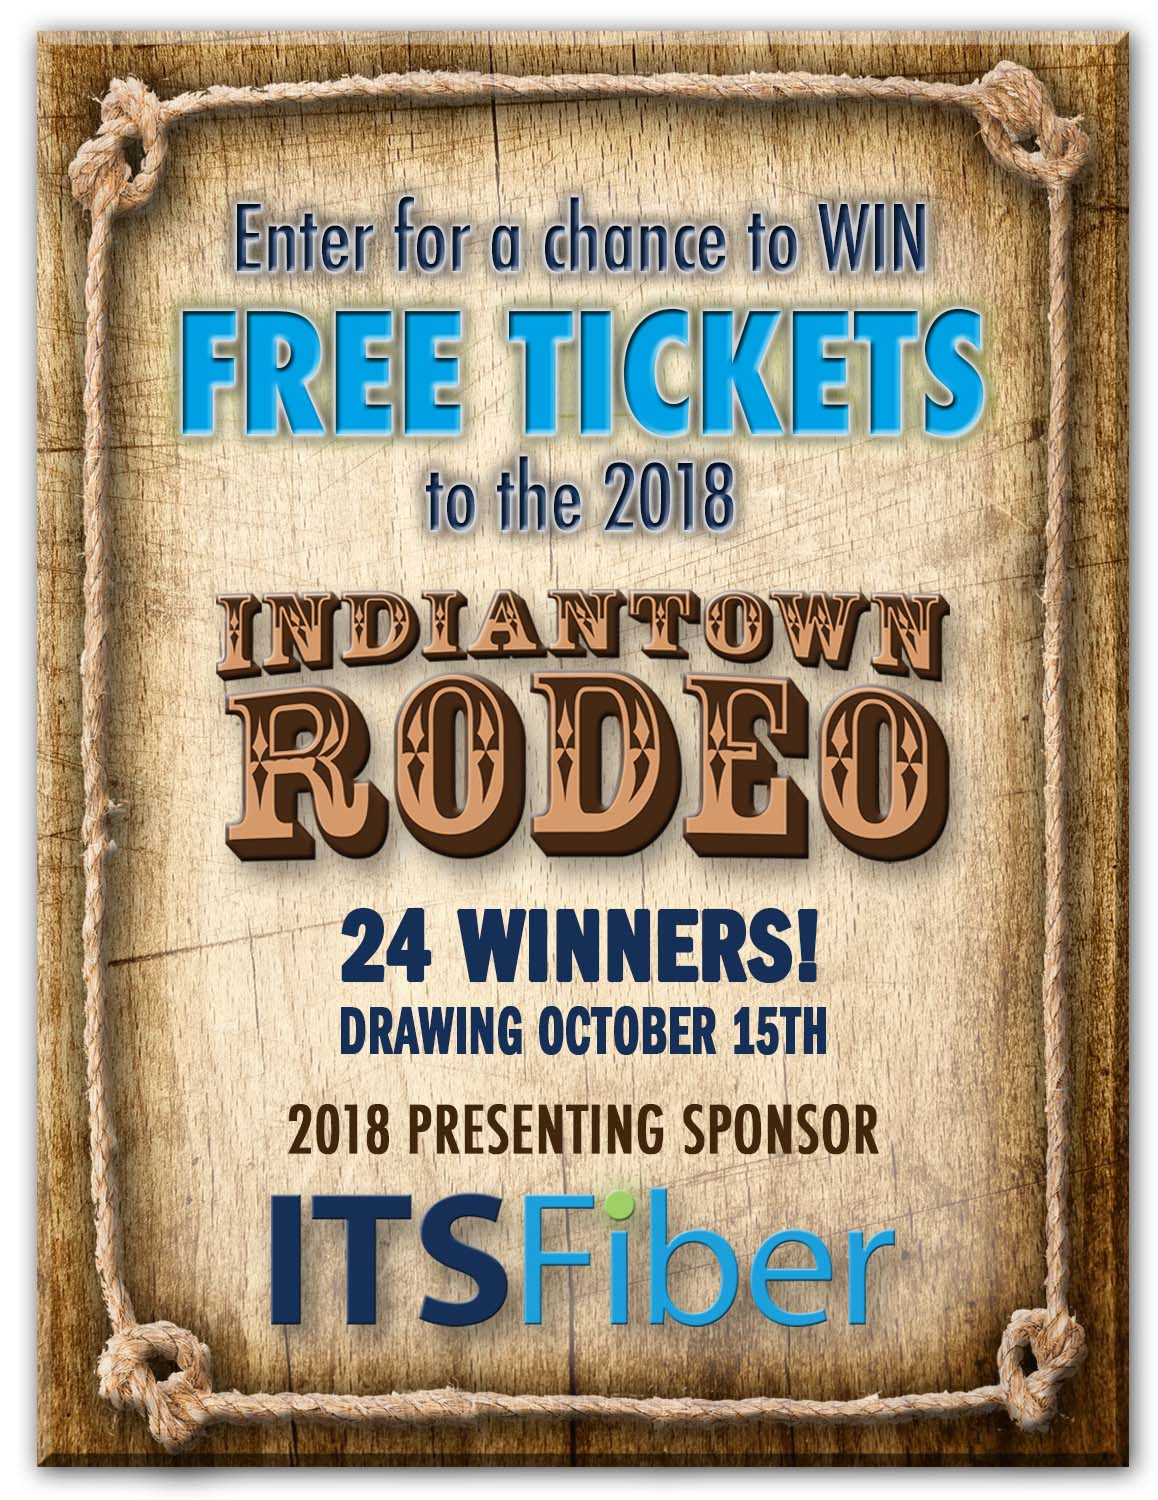 Rodeo win tickets image